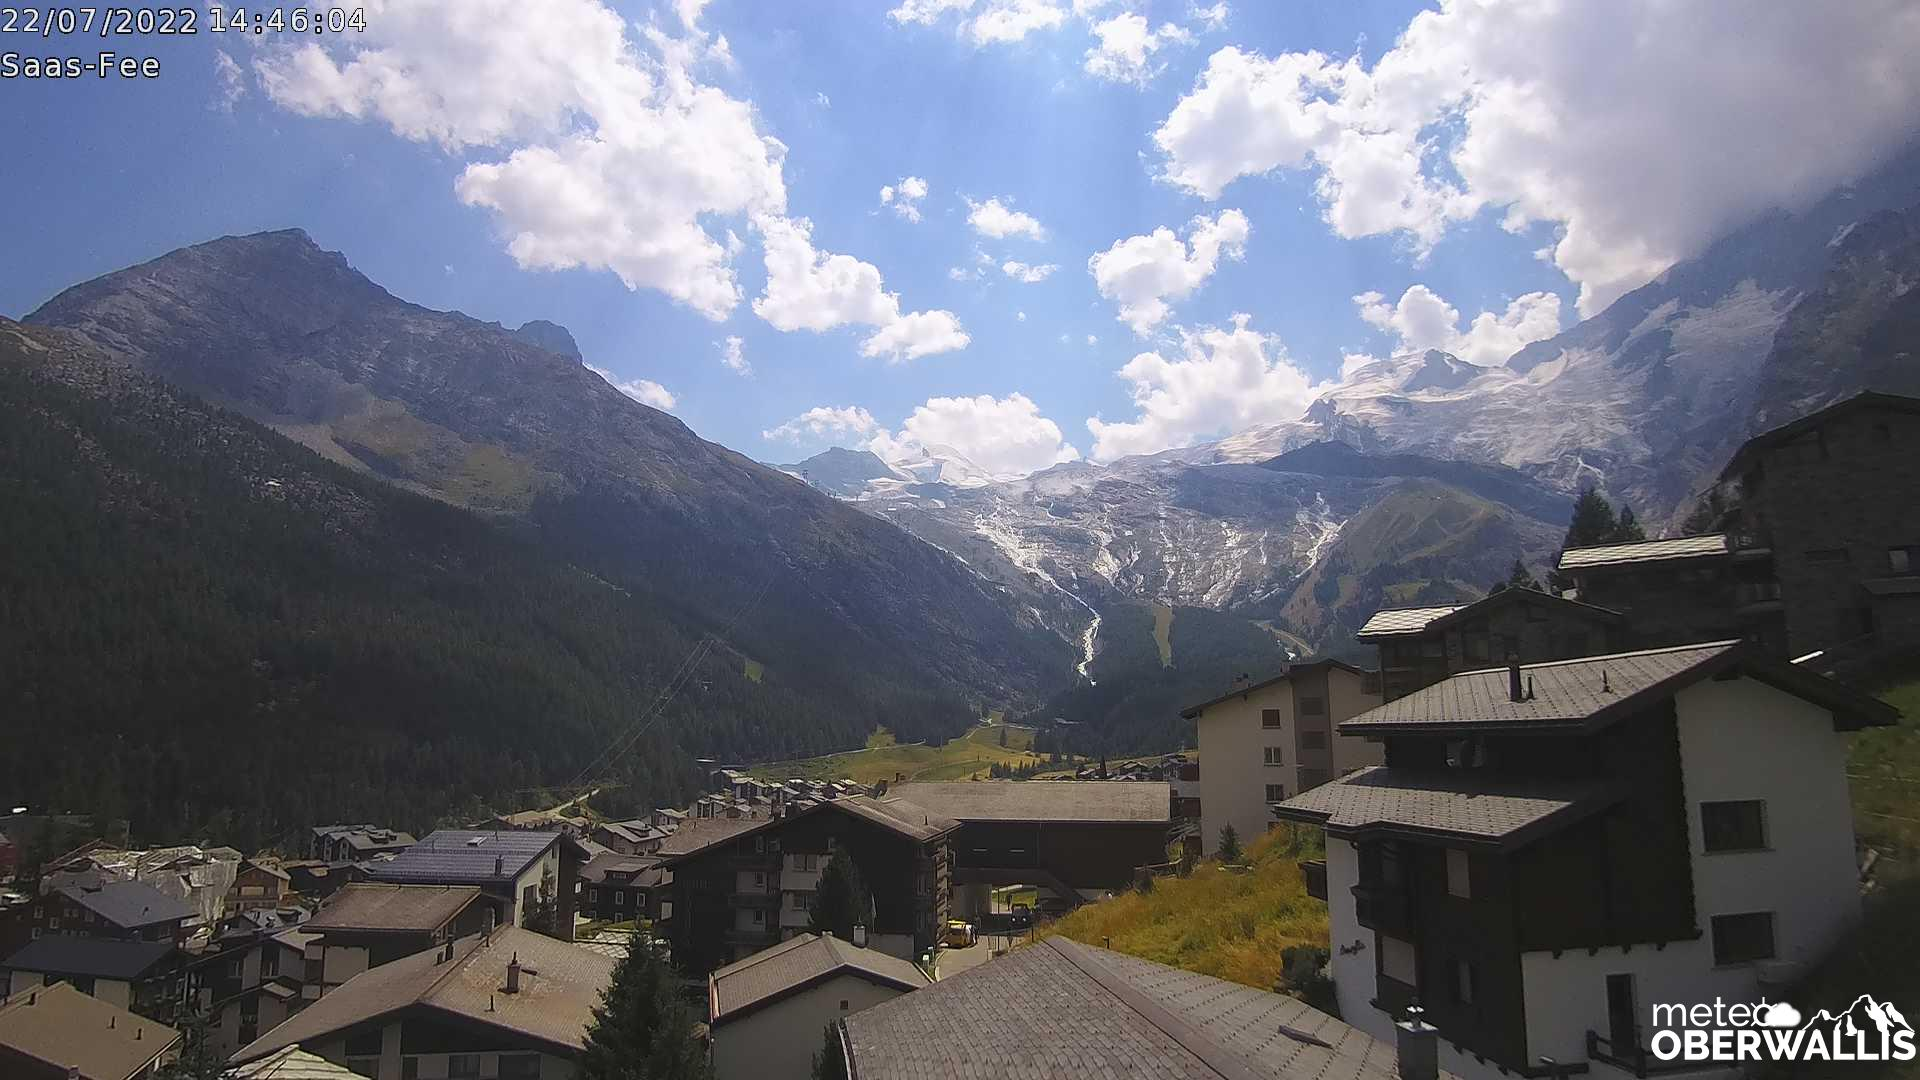 Webcam Haus Astor Saas-Fee